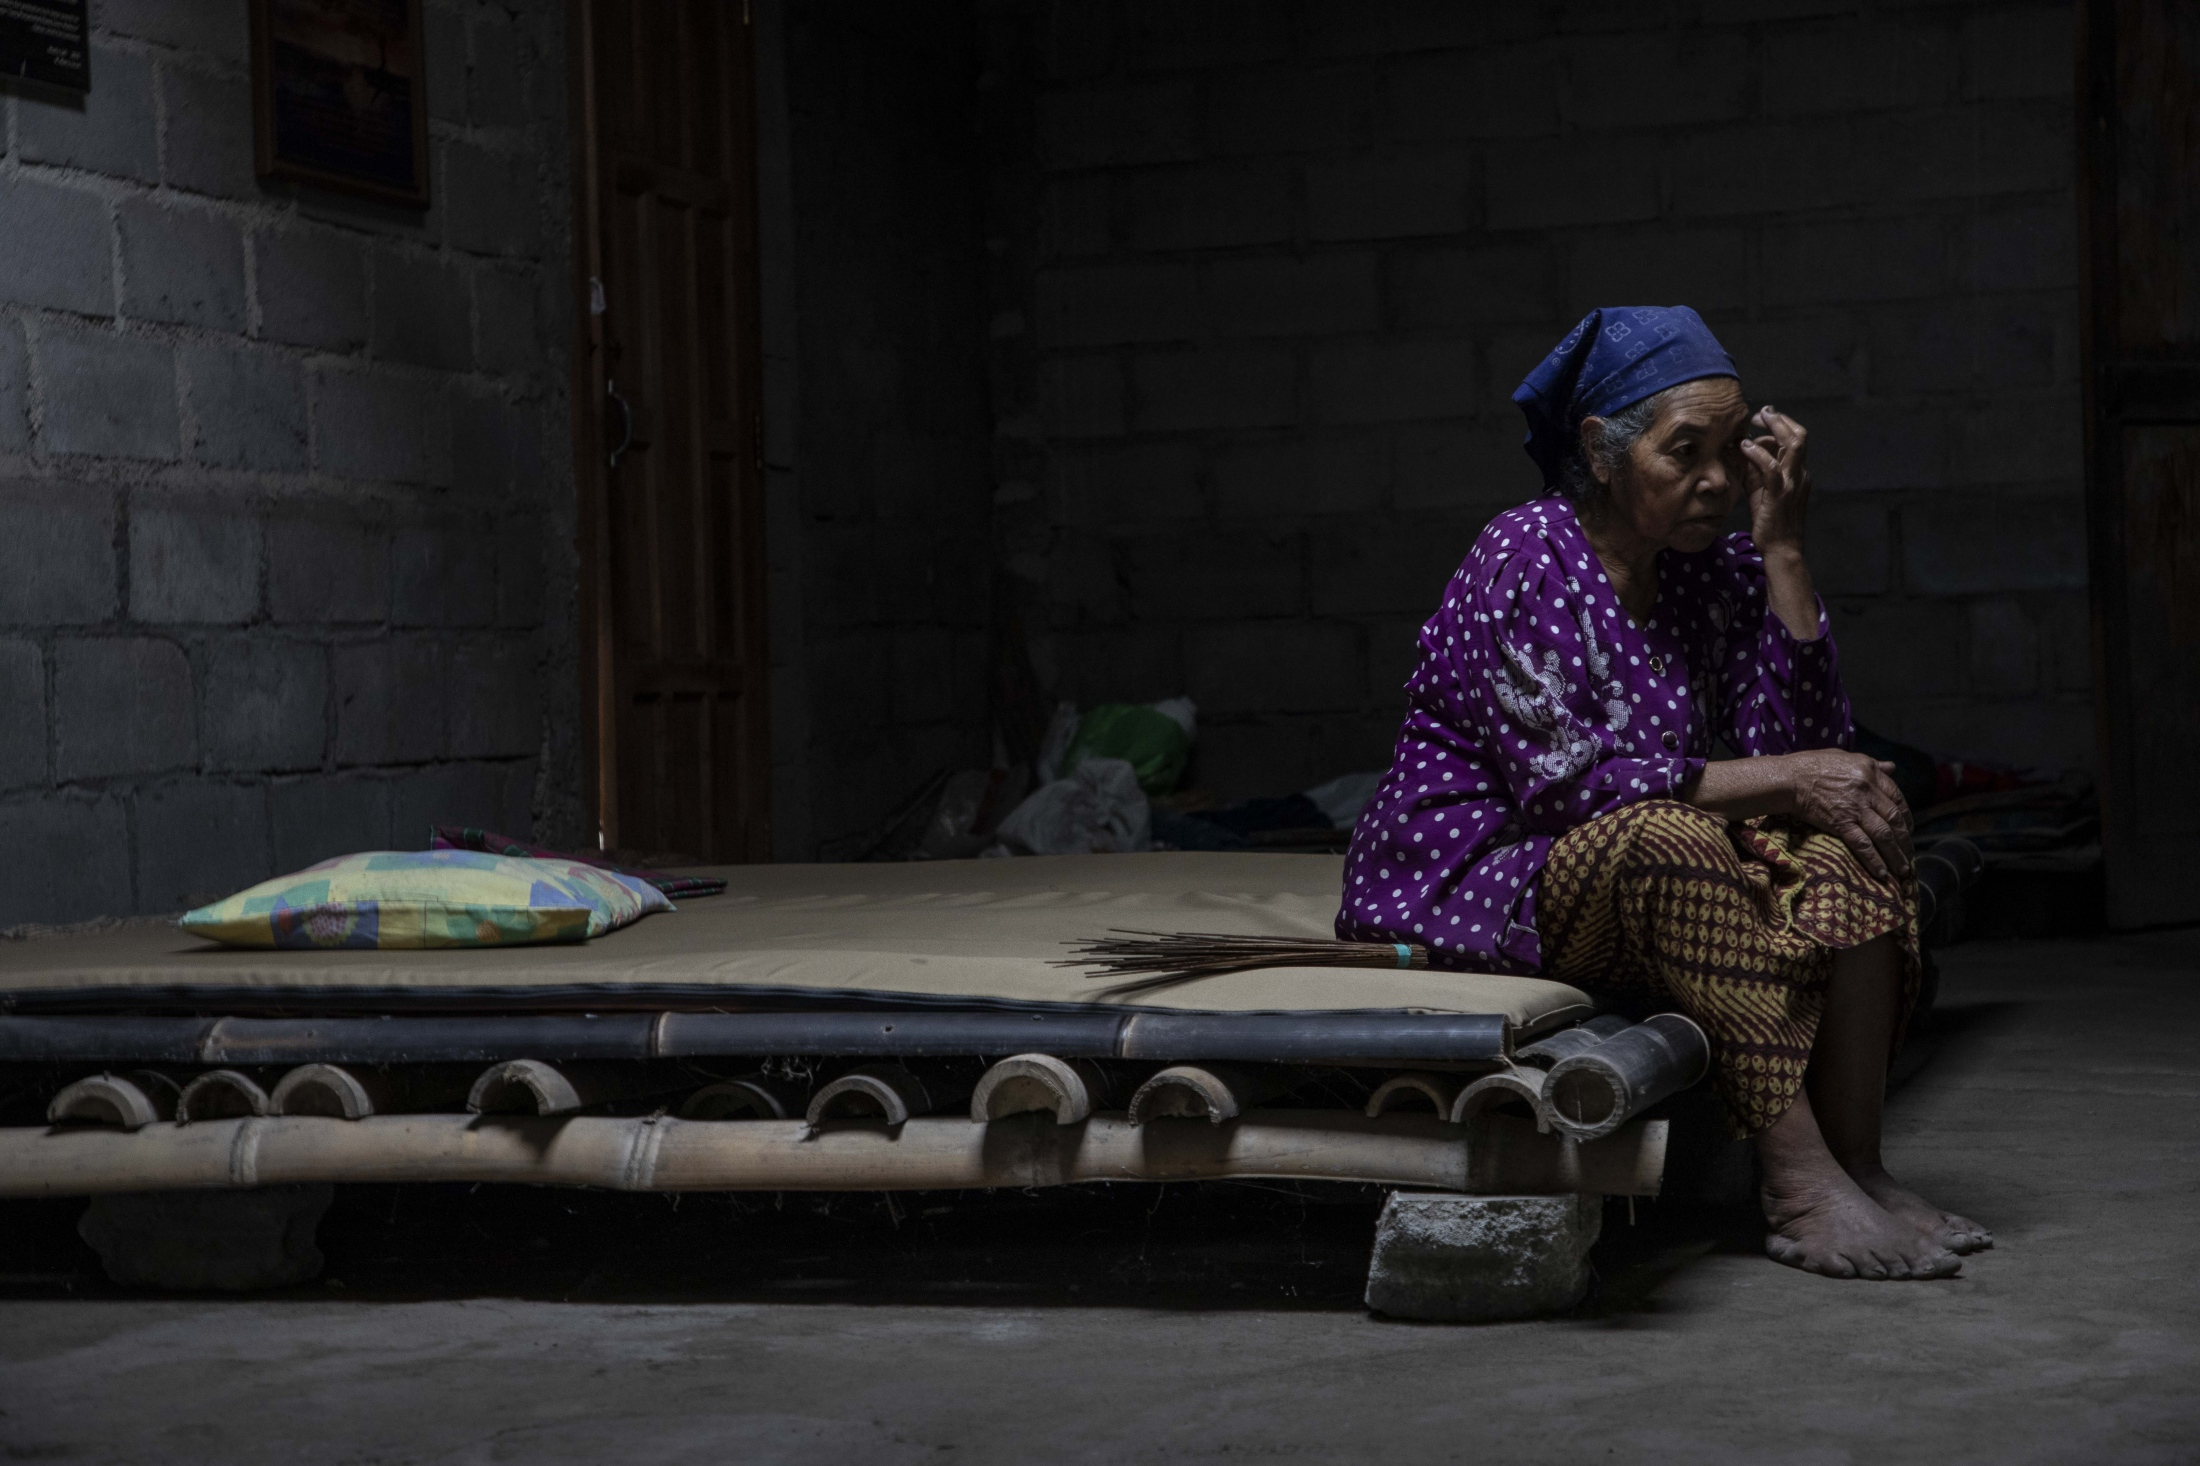 Mbah Sudiwiyono taking a break on the bed in her one-room house in the forest near the volcano crater. The walls and roof were rebuilt after the 2010 eruption. As the only remaining inhabitant of her village, she sometimes misses her family and neighbours at these quite hours after finishing all work. Yet, she feels more comfortable living here in the place where she was born and lived in for almost all her live.